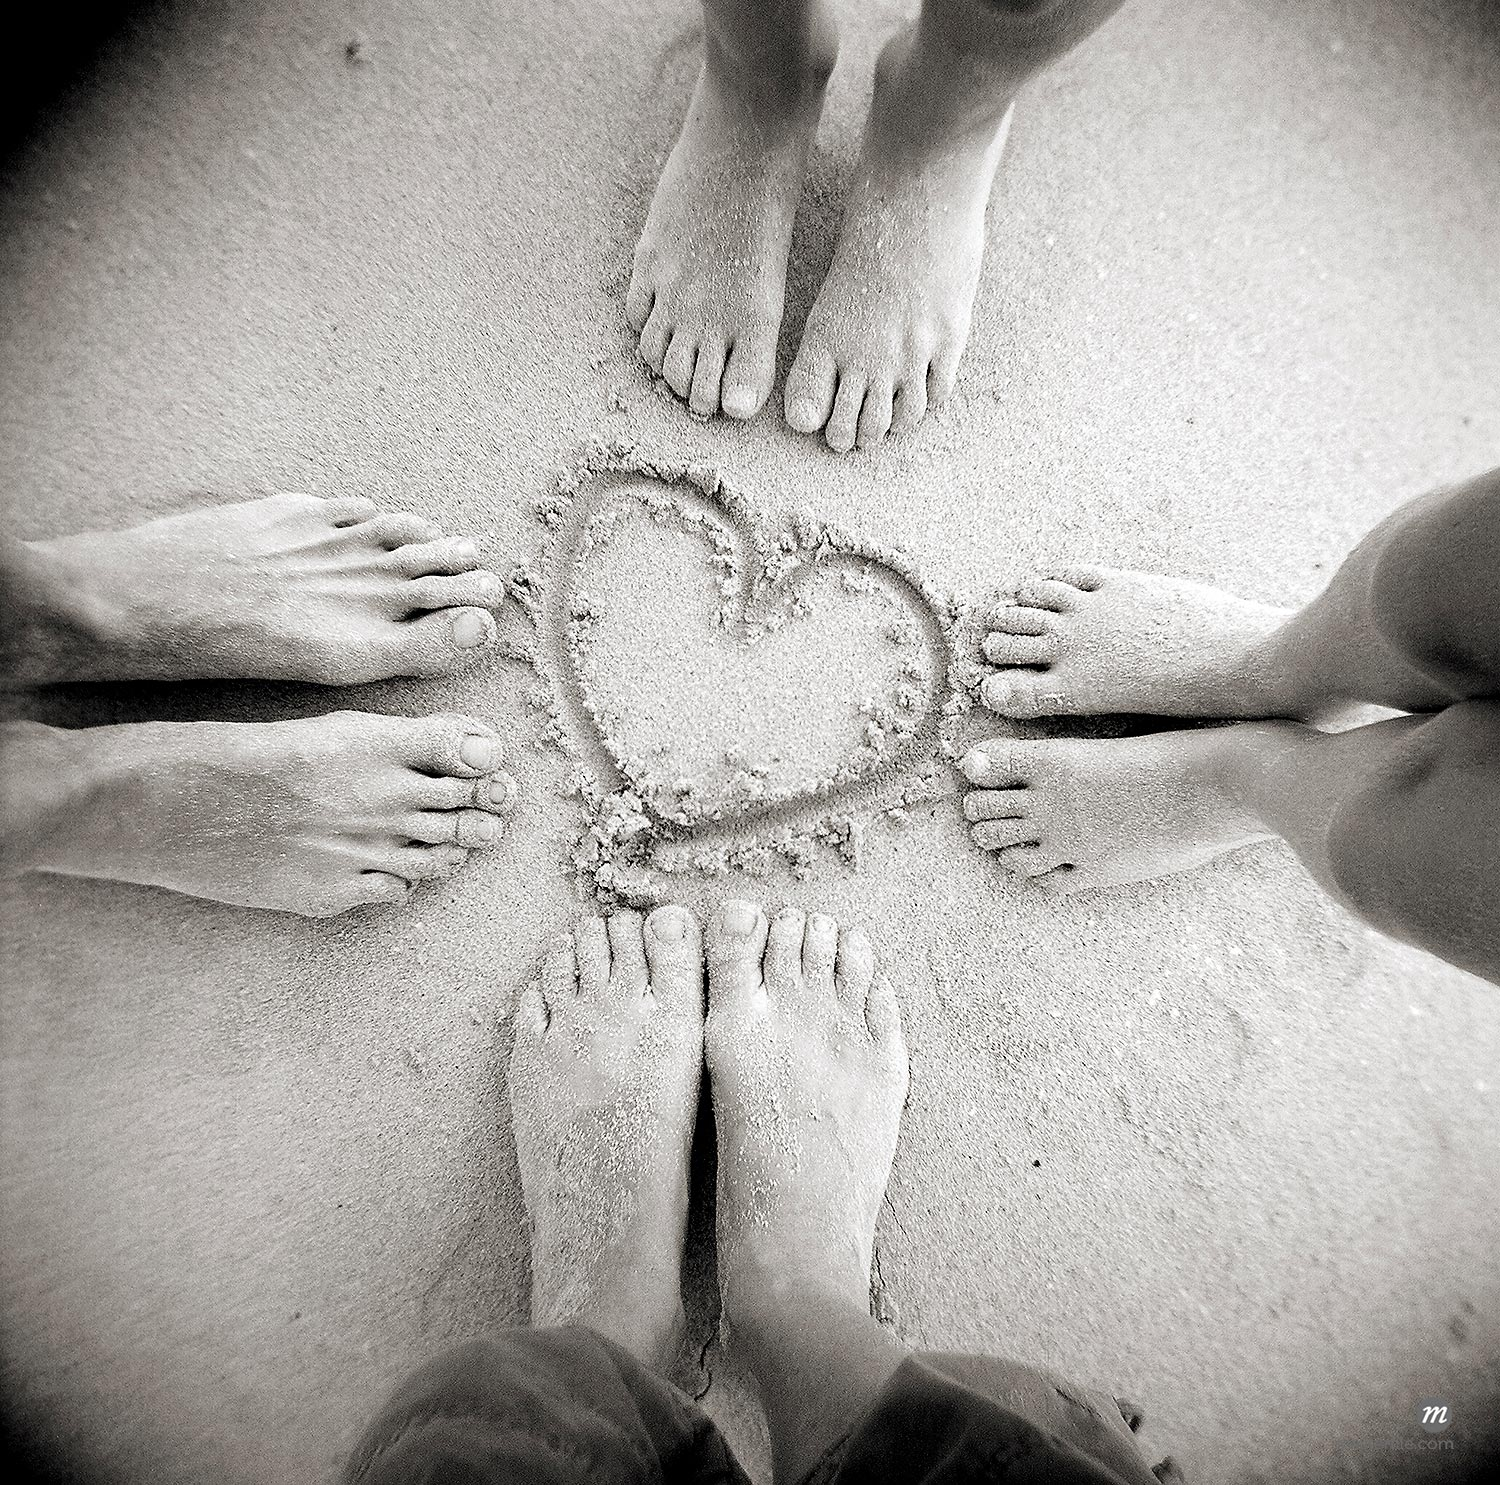 Four pairs of feet standing around heart drawn in sand on beach  © Robert Harding Images / Masterfile